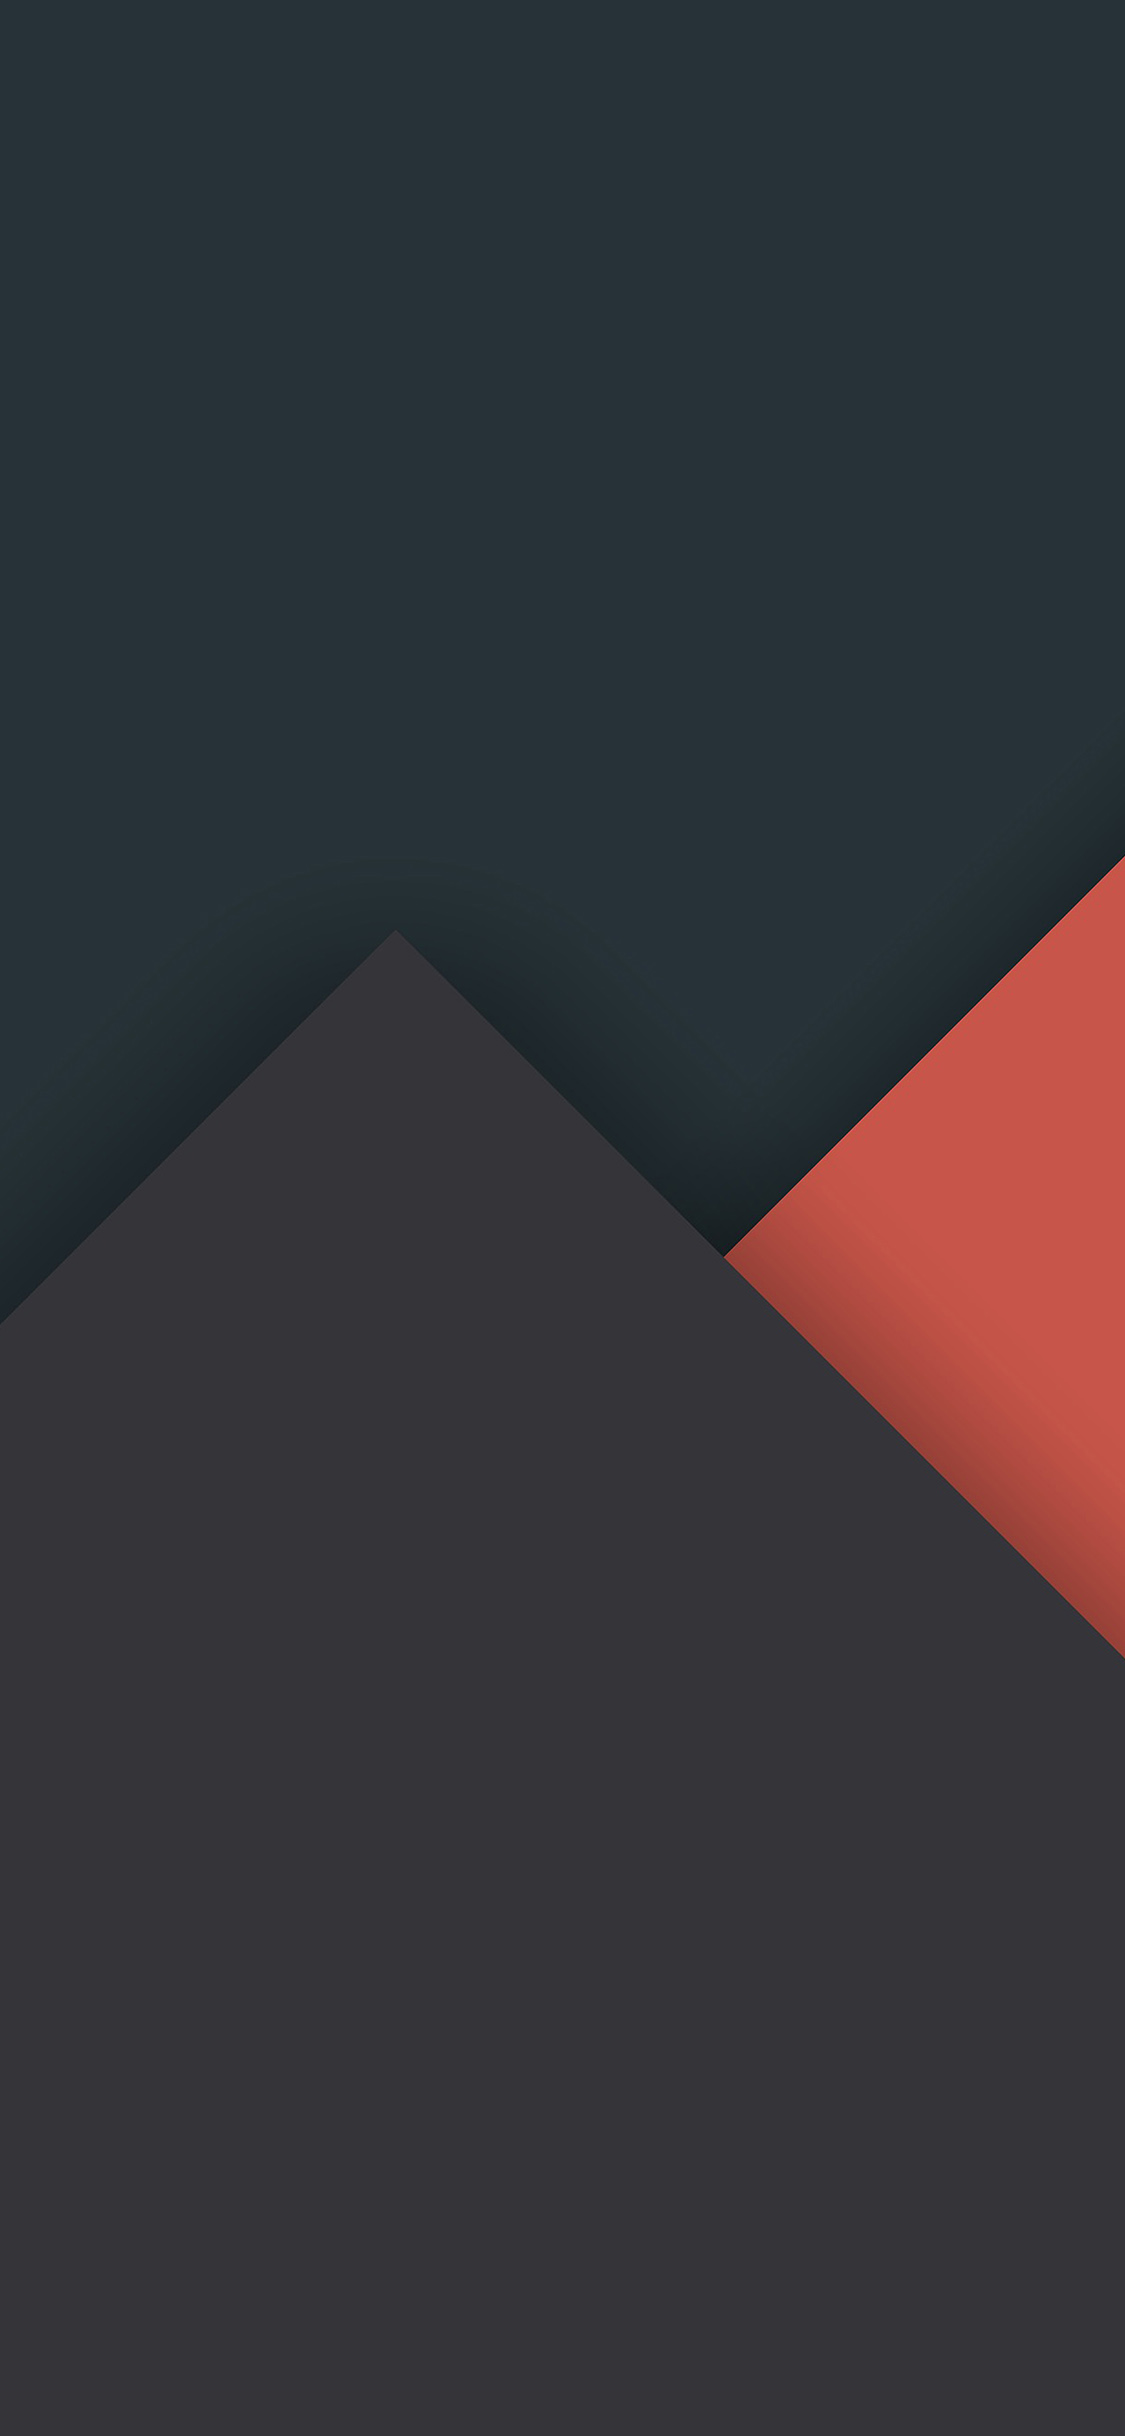 iPhoneXpapers.com-Apple-iPhone-wallpaper-vk55-android-lollipop-material-design-pattern